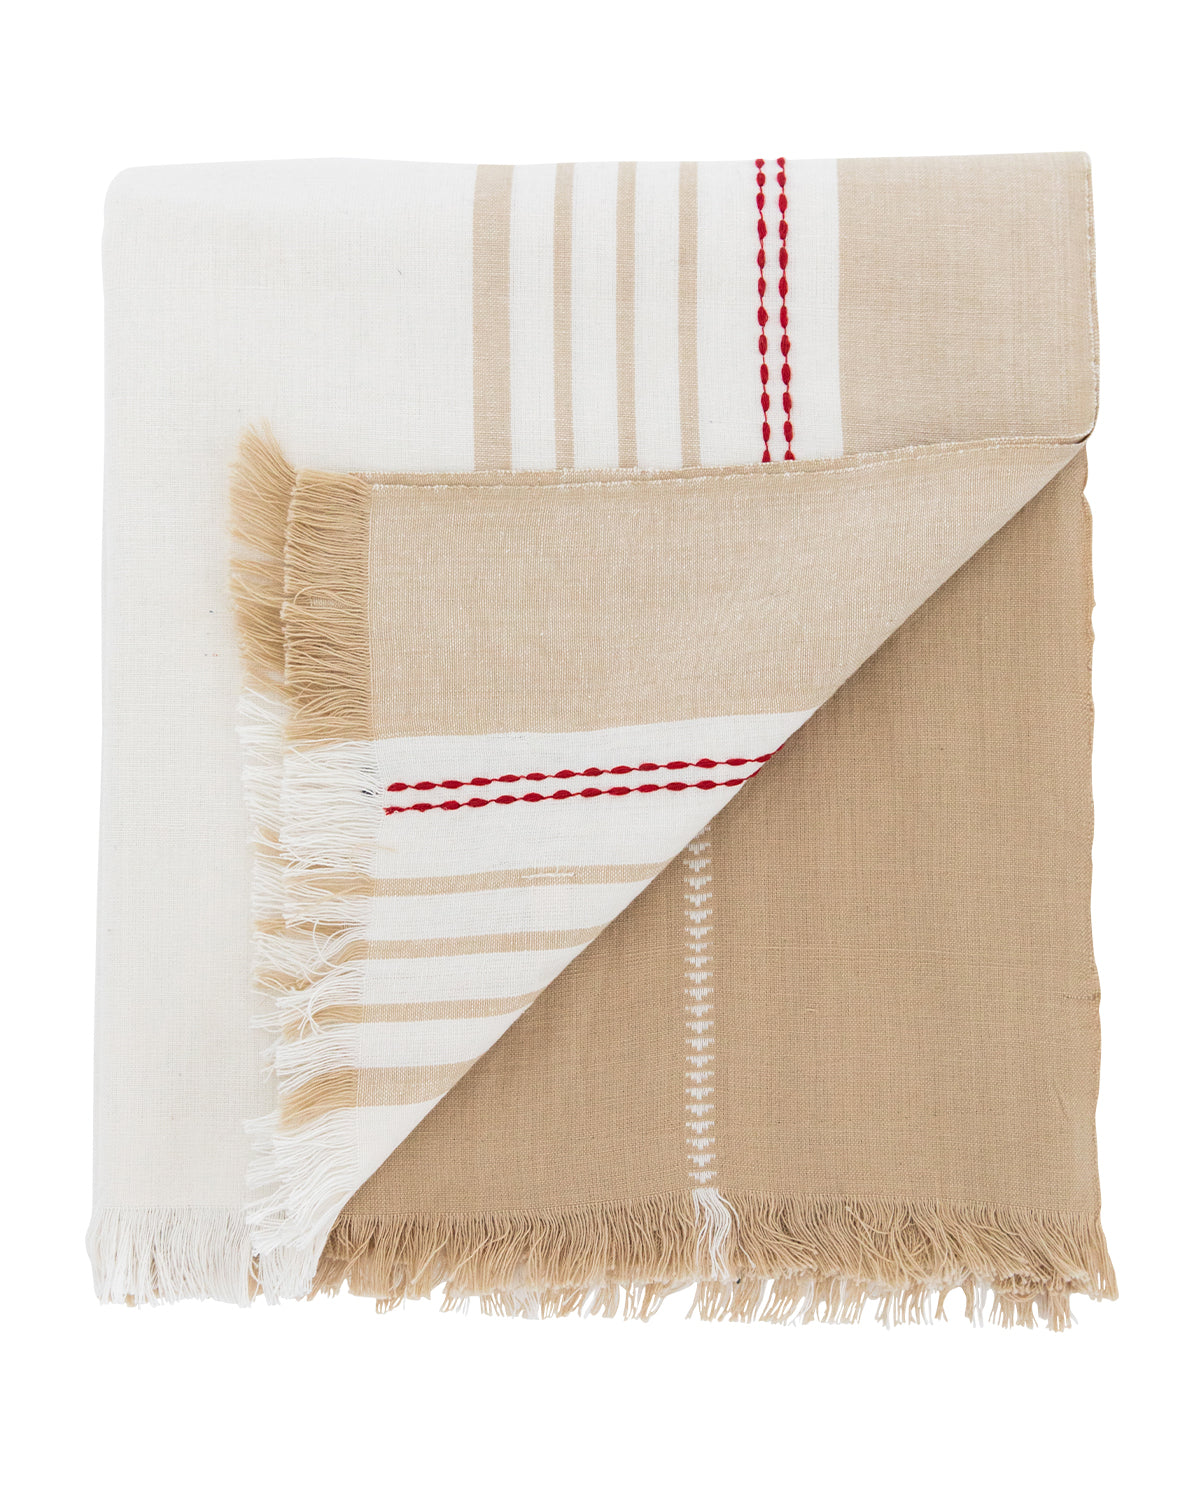 Malabar Cotton Throw